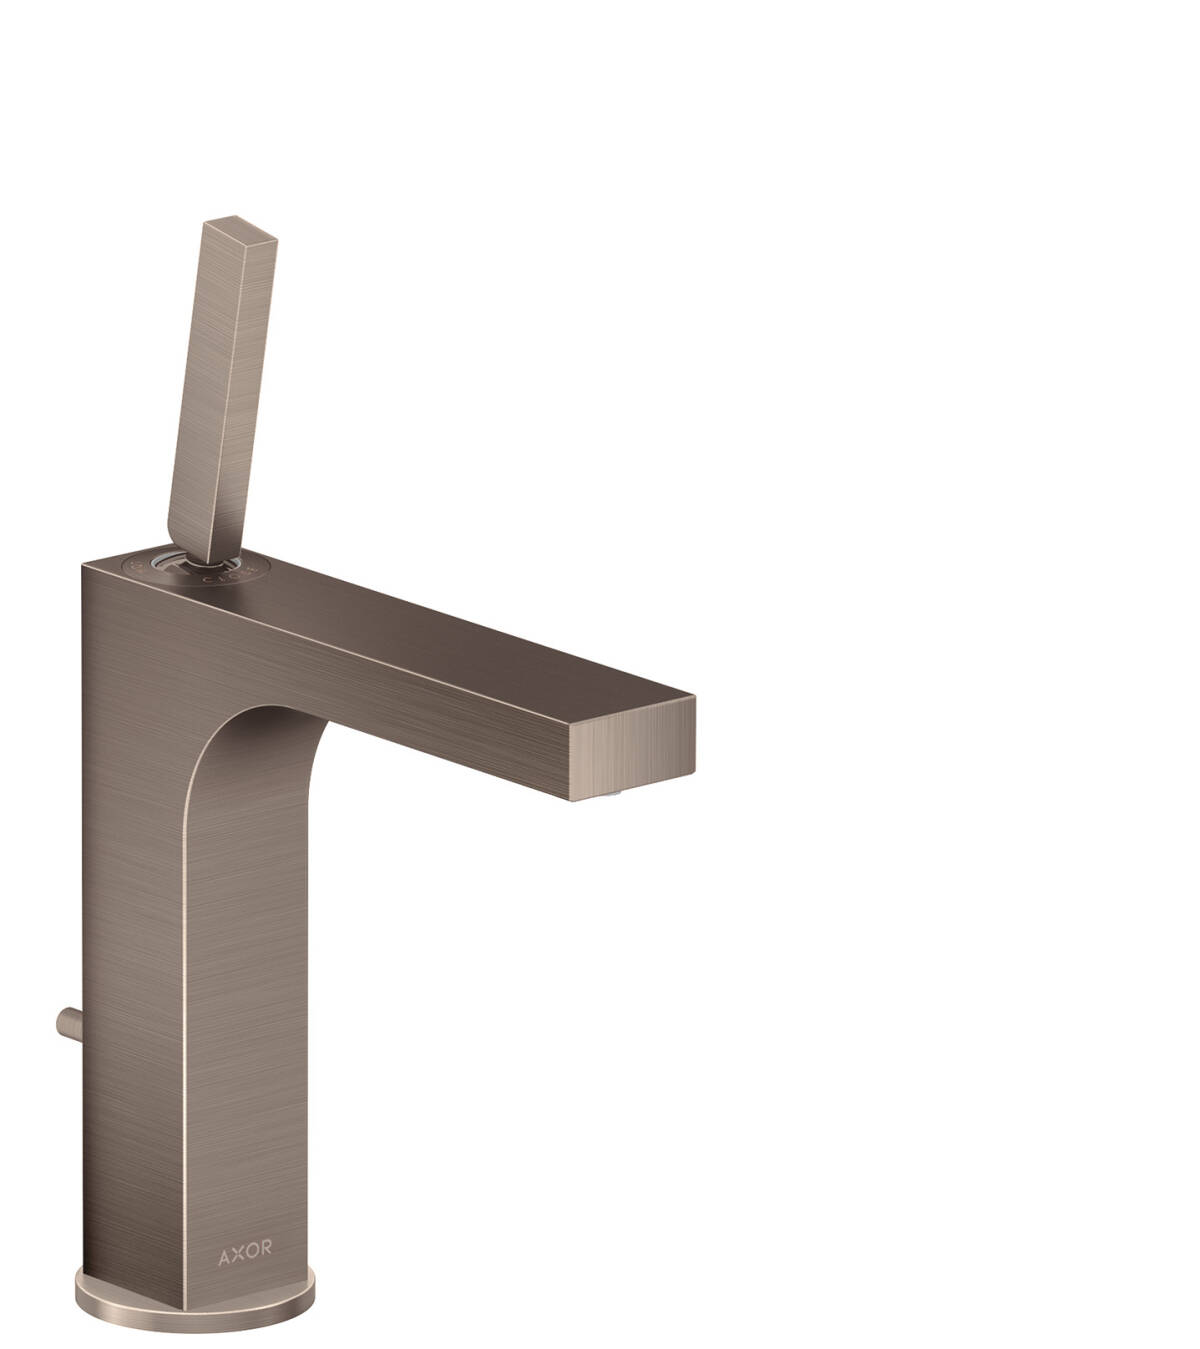 Single lever basin mixer 160 with pin handle and pop-up waste set, Brushed Nickel, 39031820